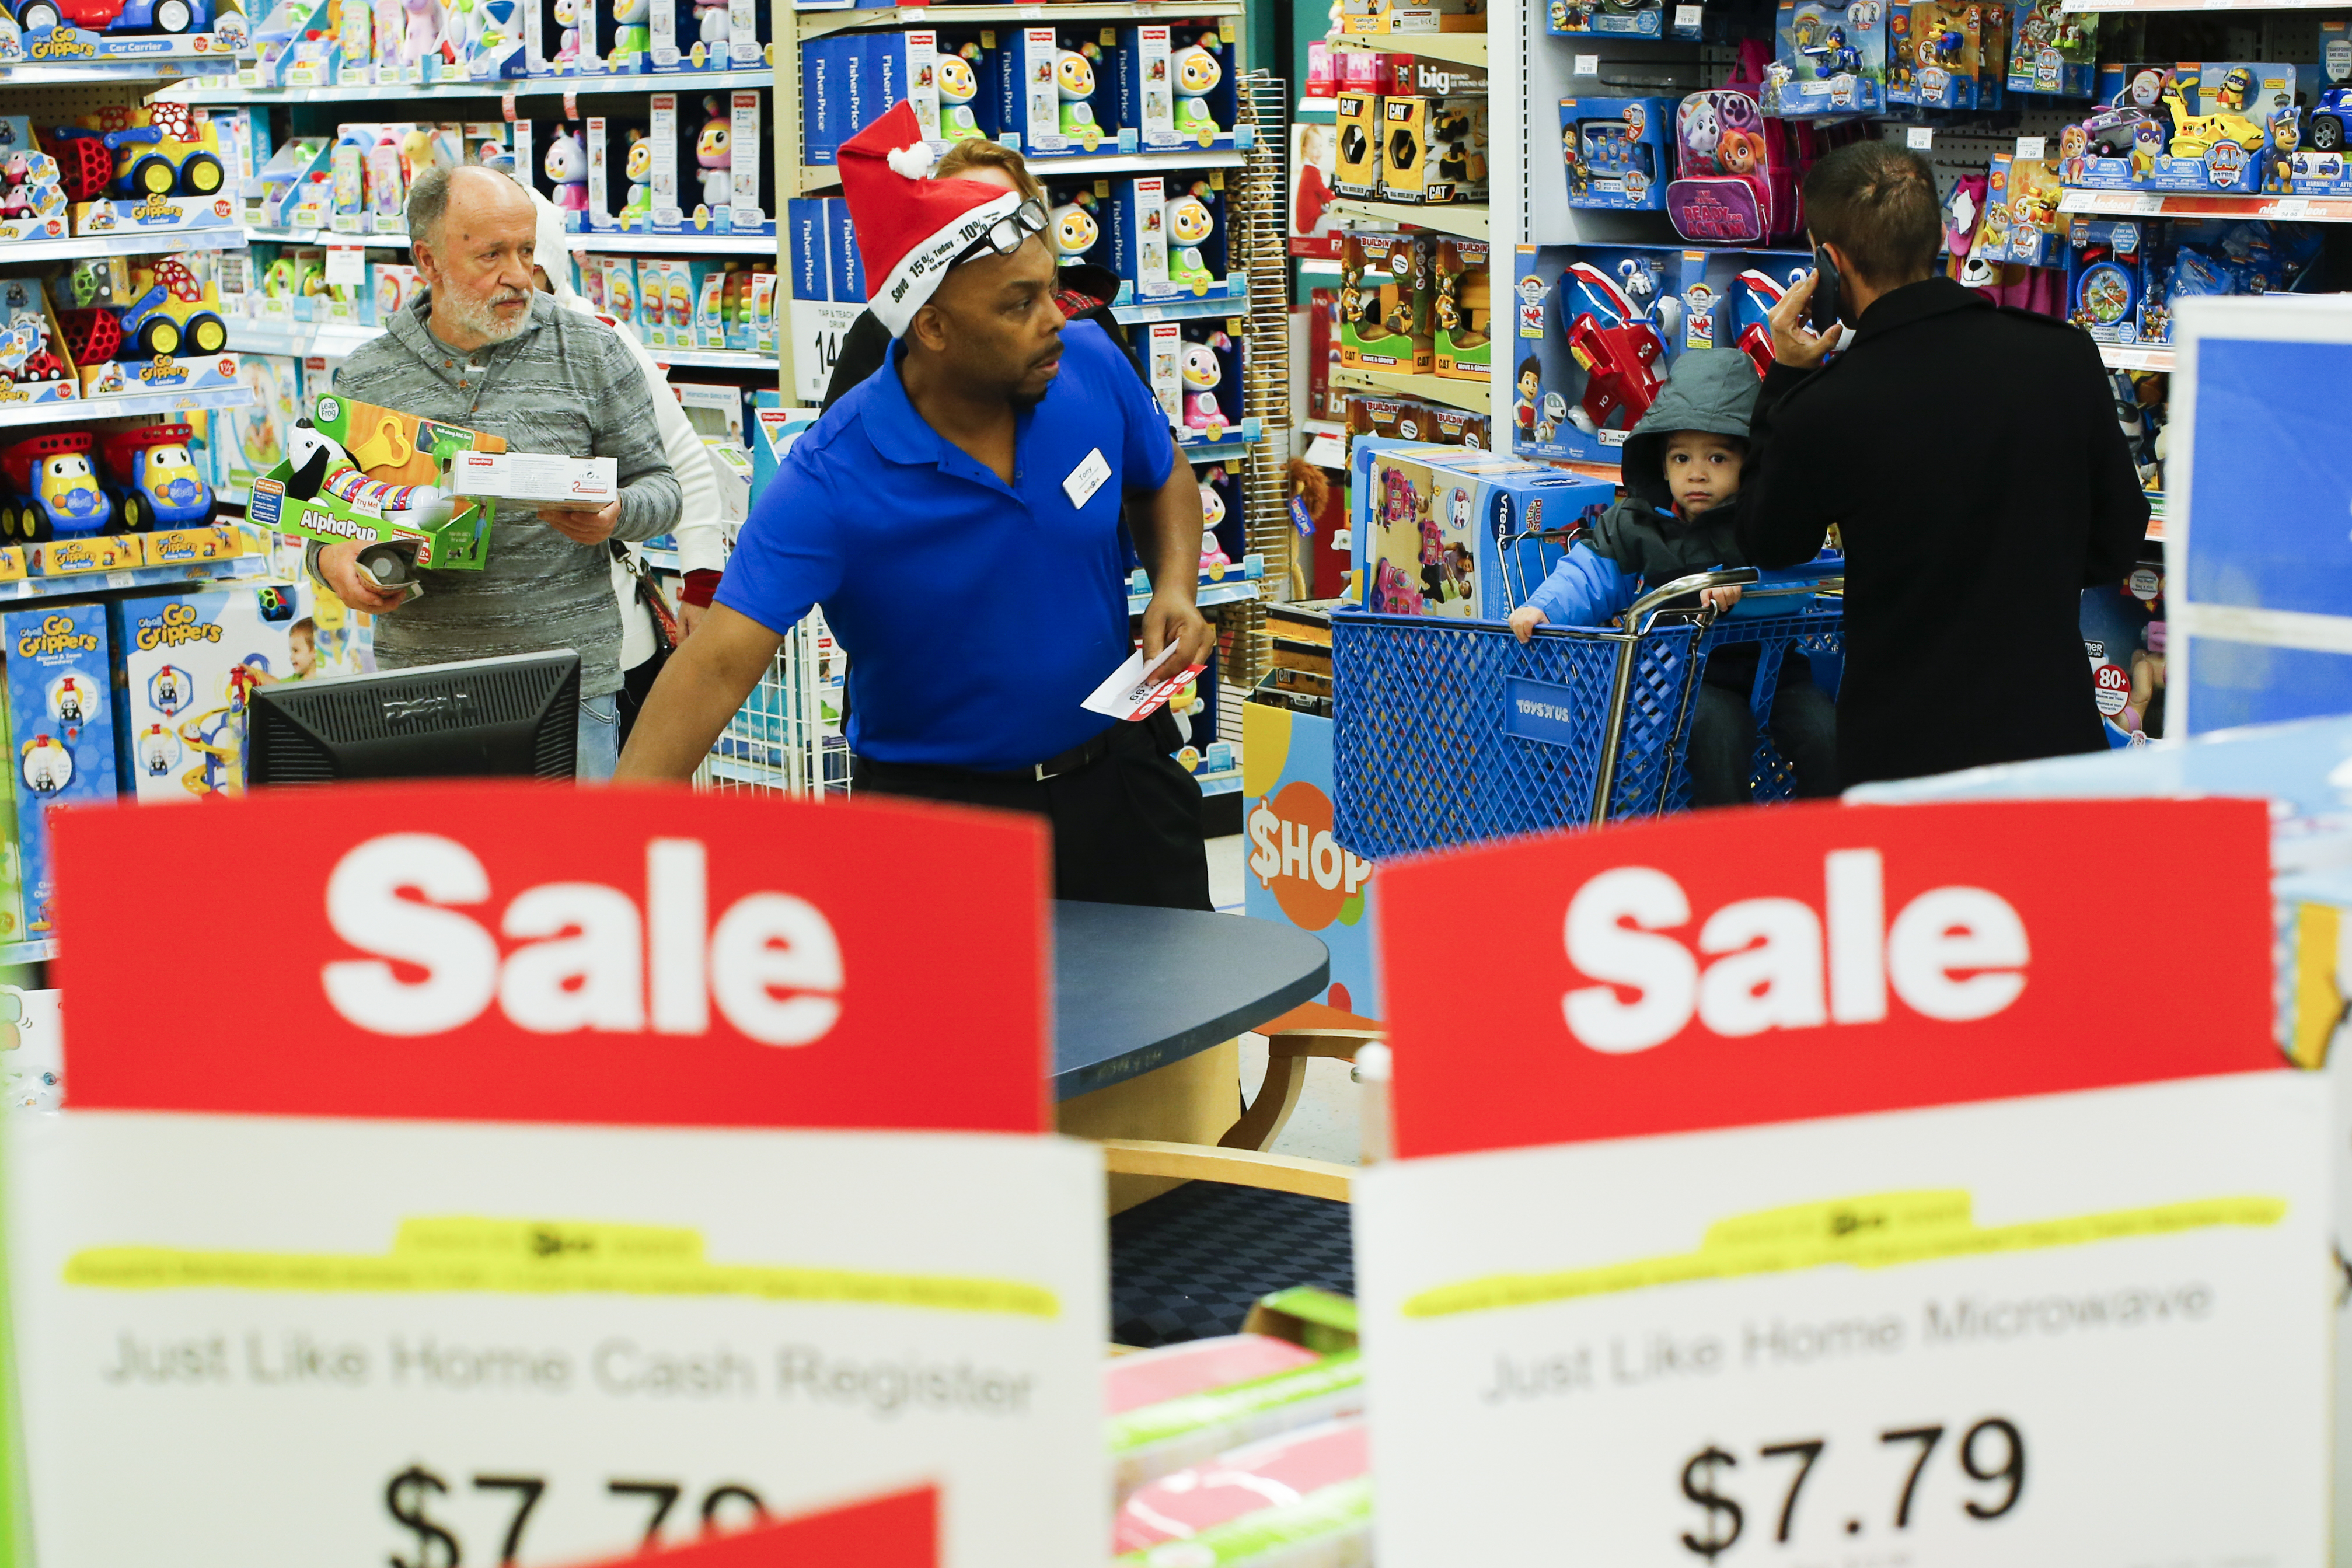 The only sale that interests me this Black Friday is Chris.